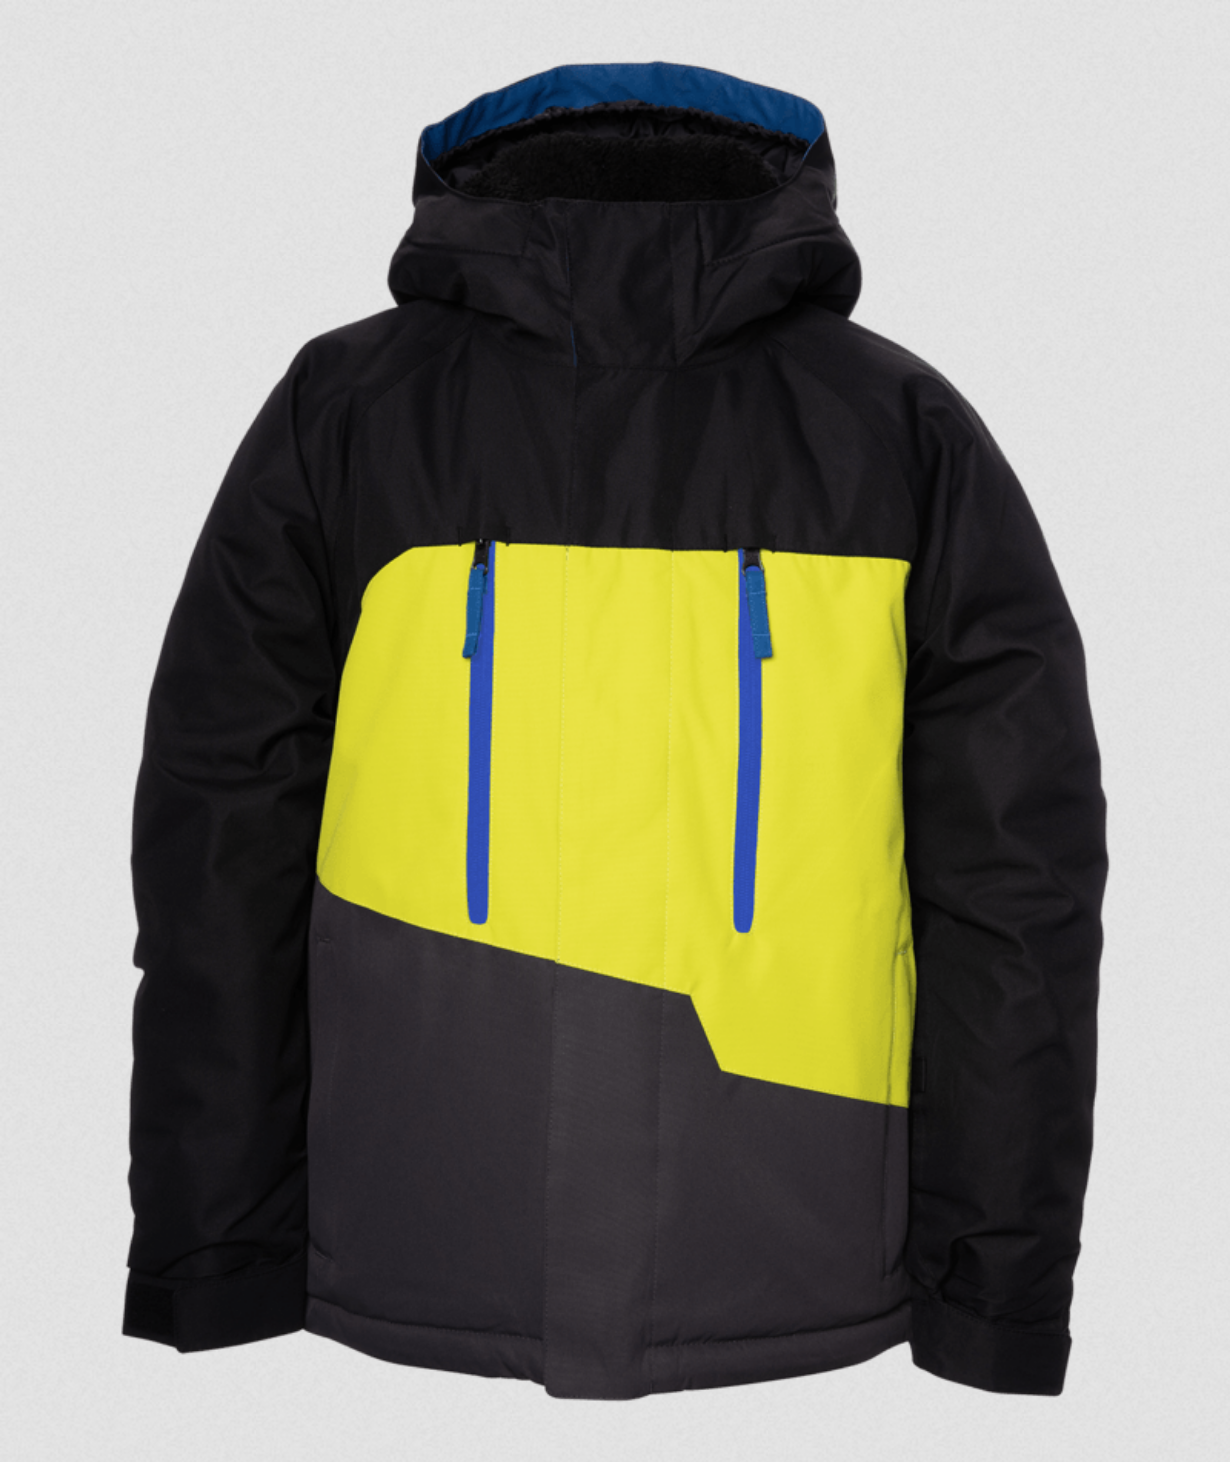 686 Boys Geo insulated Snow Jacket - Lime Punch Colorblock